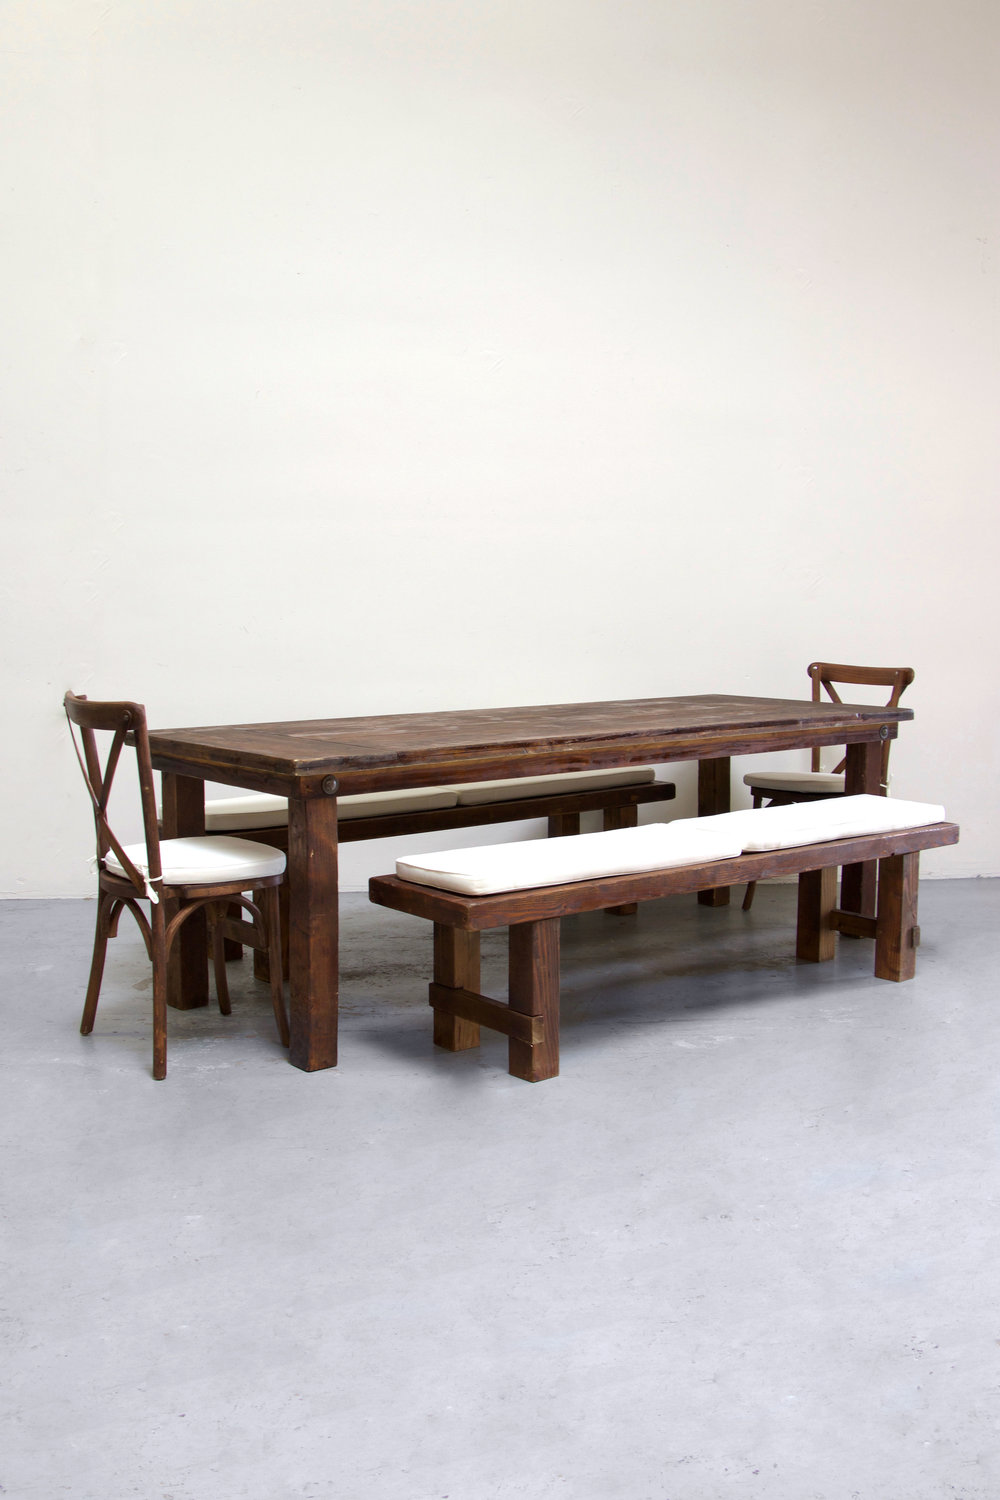 1 Mahogany Farm Table w/ 2 Long Benches & 2 Cross-Back Chairs $160